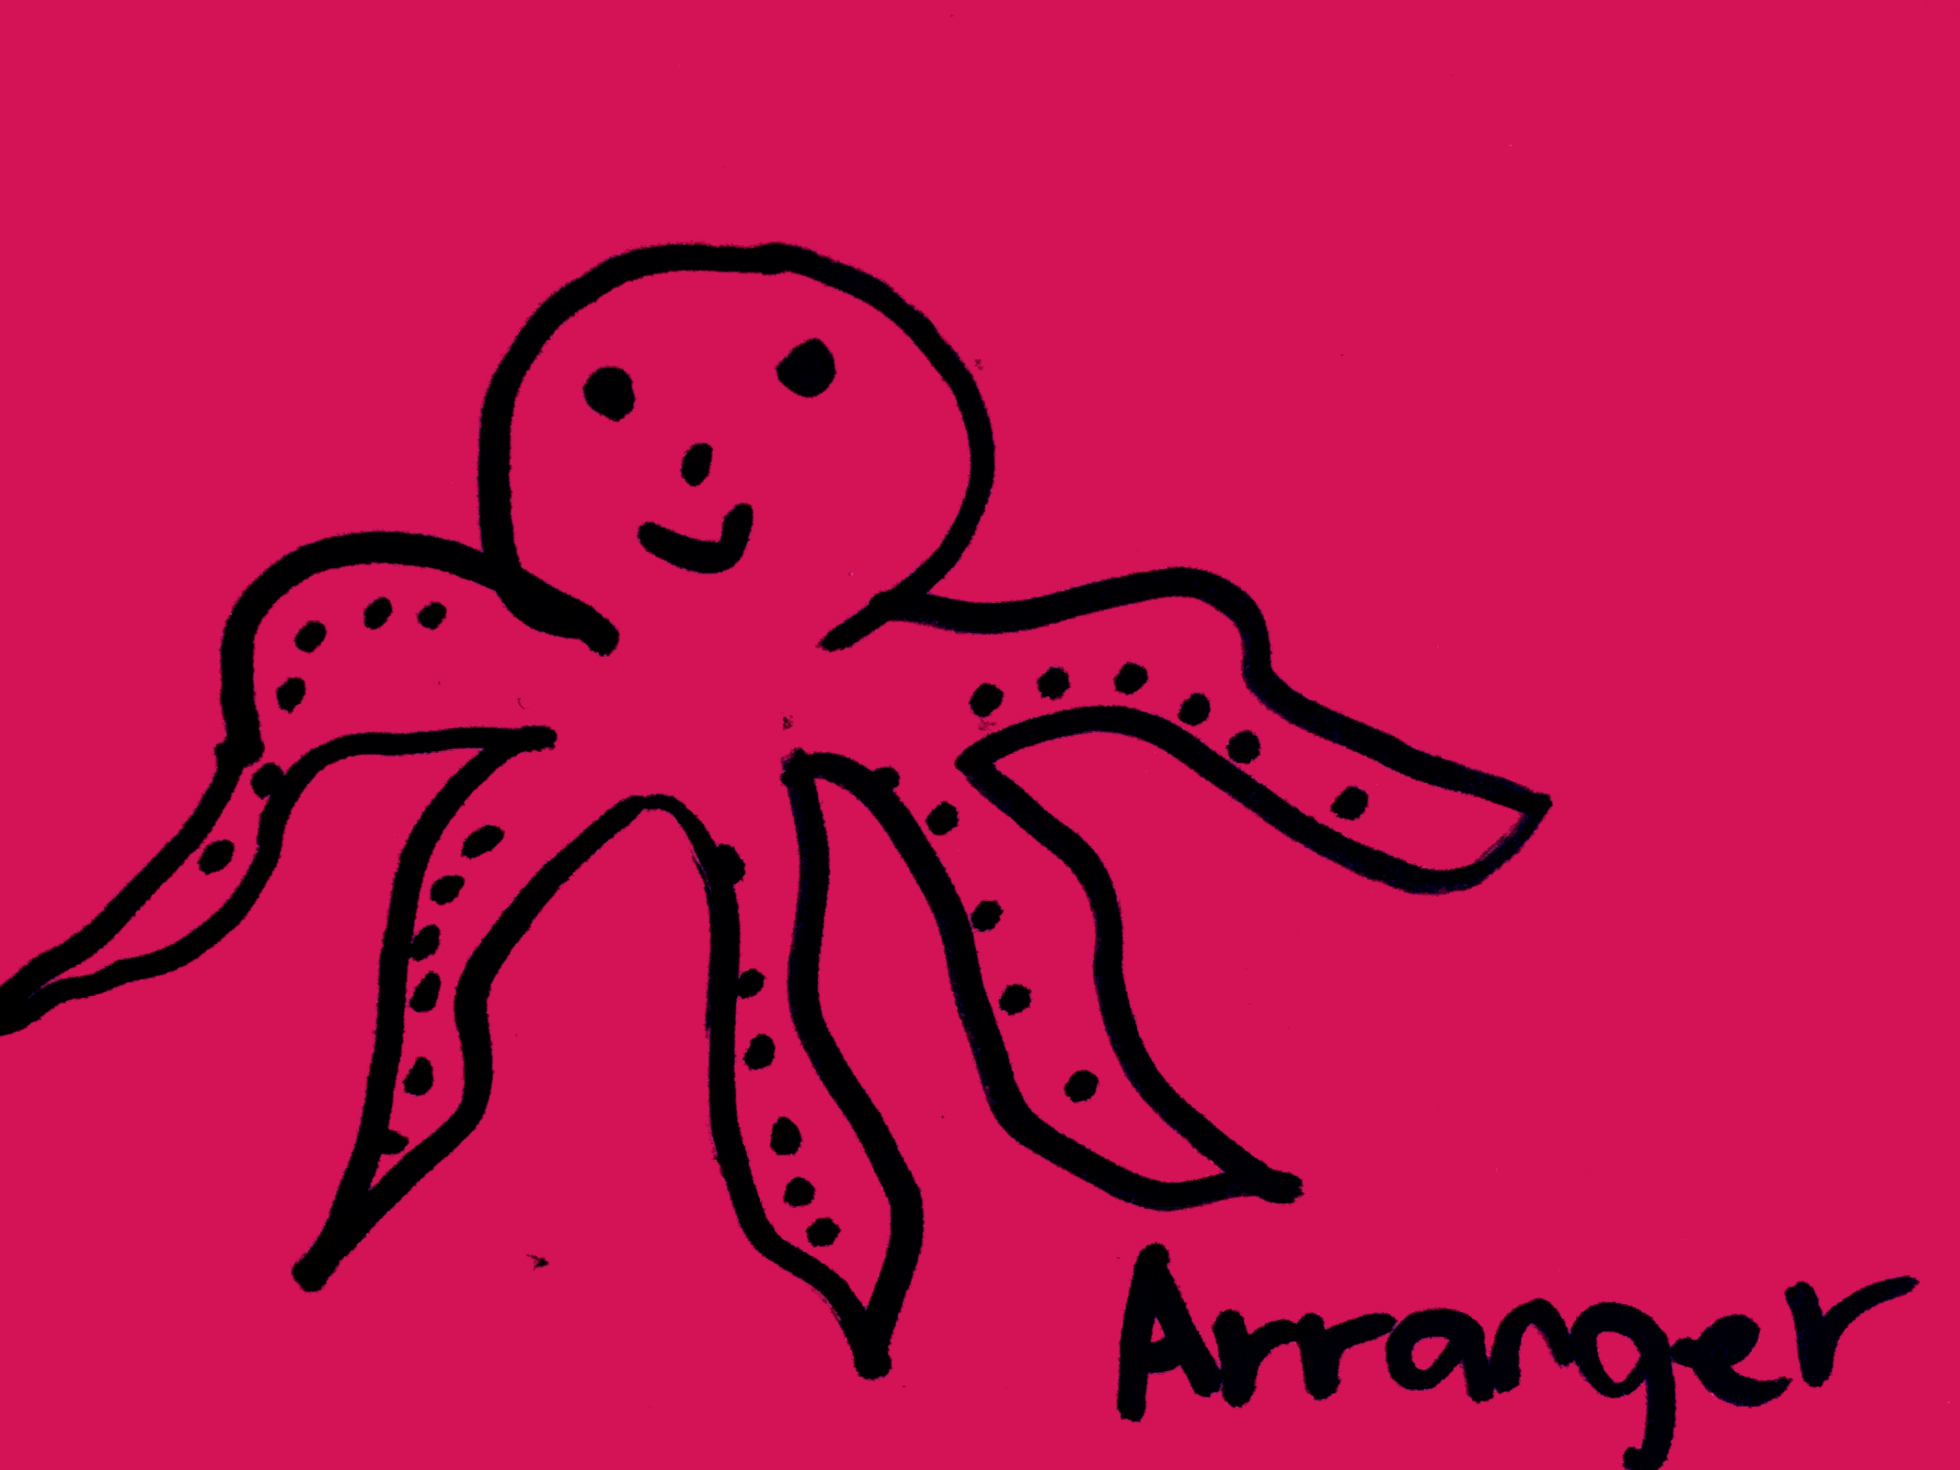 Arranger Strengthsfinder Octopus Many Tentacles